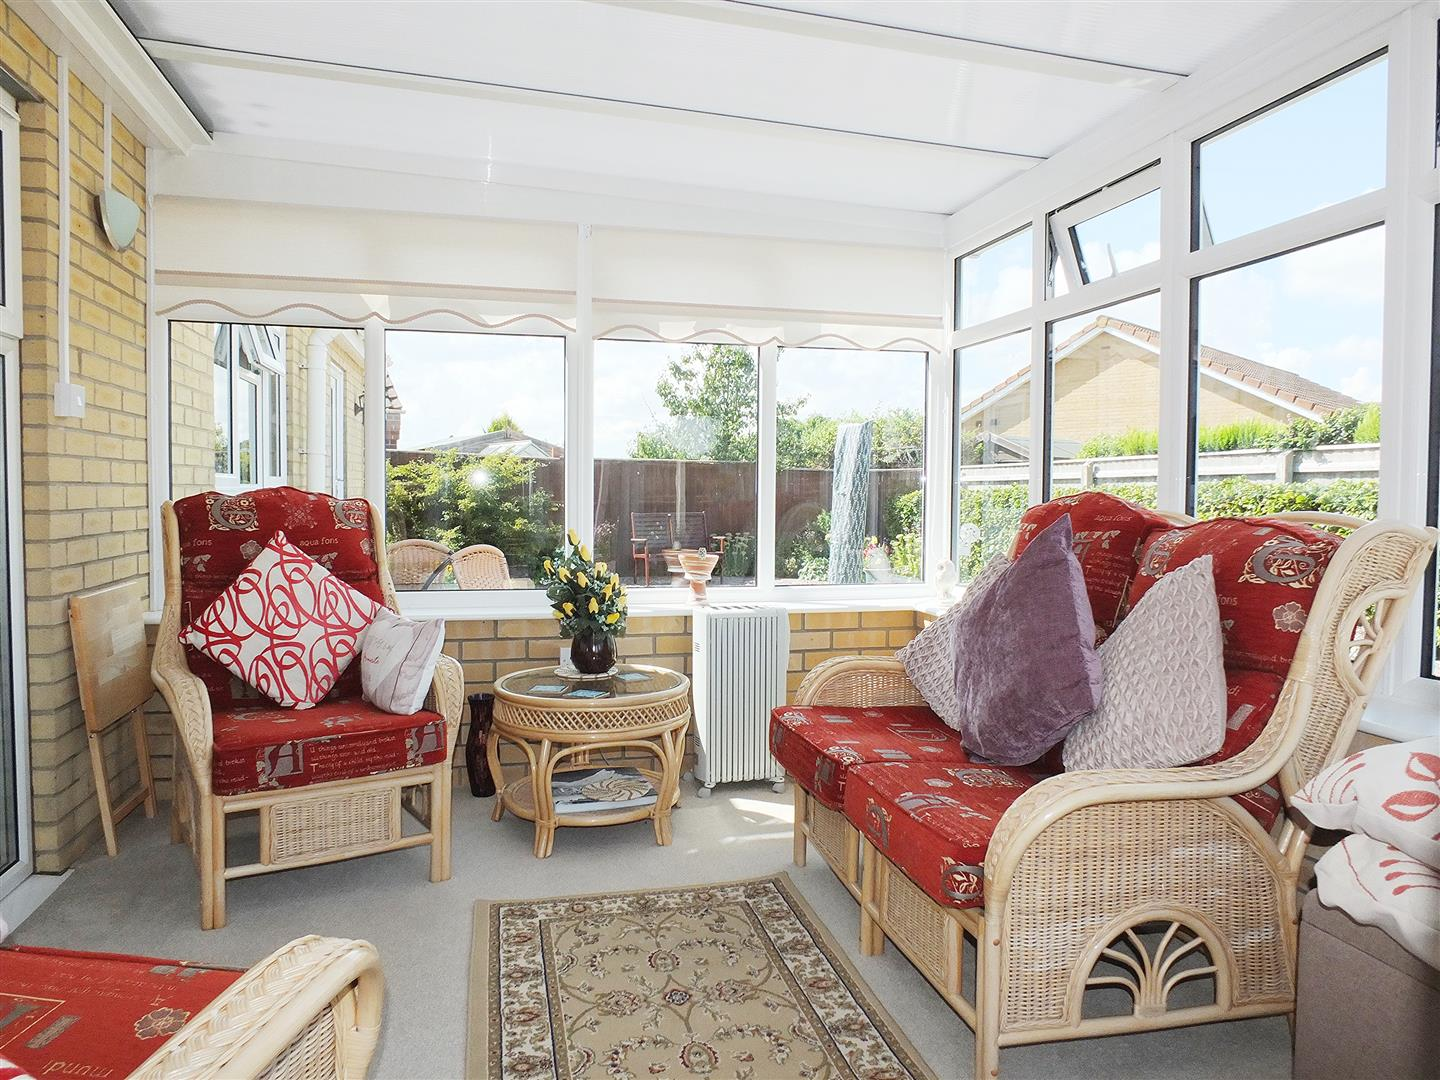 3 bed detached bungalow for sale in Long Sutton Spalding, PE12 9FT  - Property Image 7